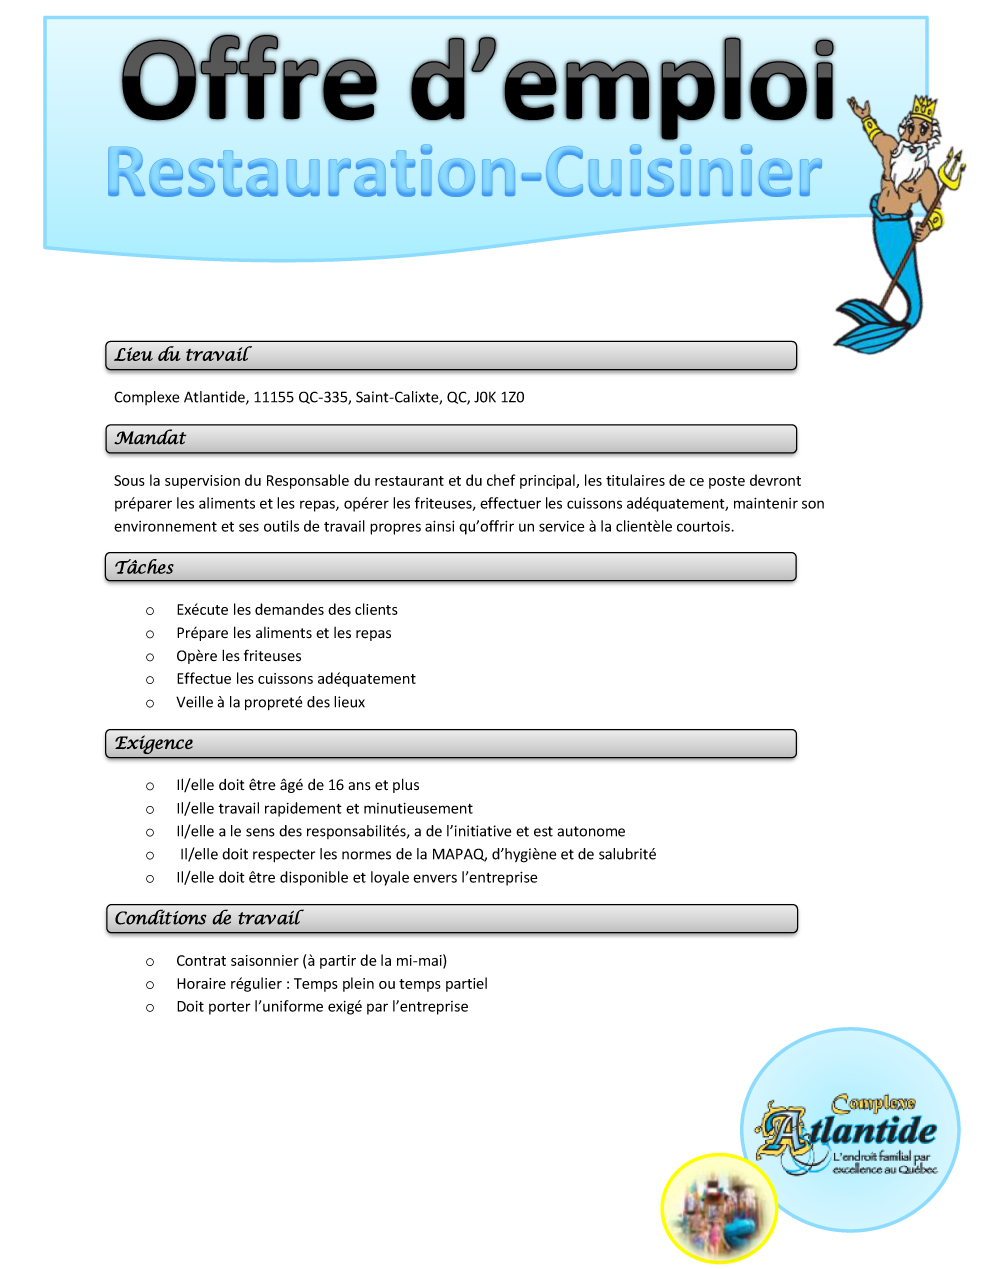 restauration-cuisinier